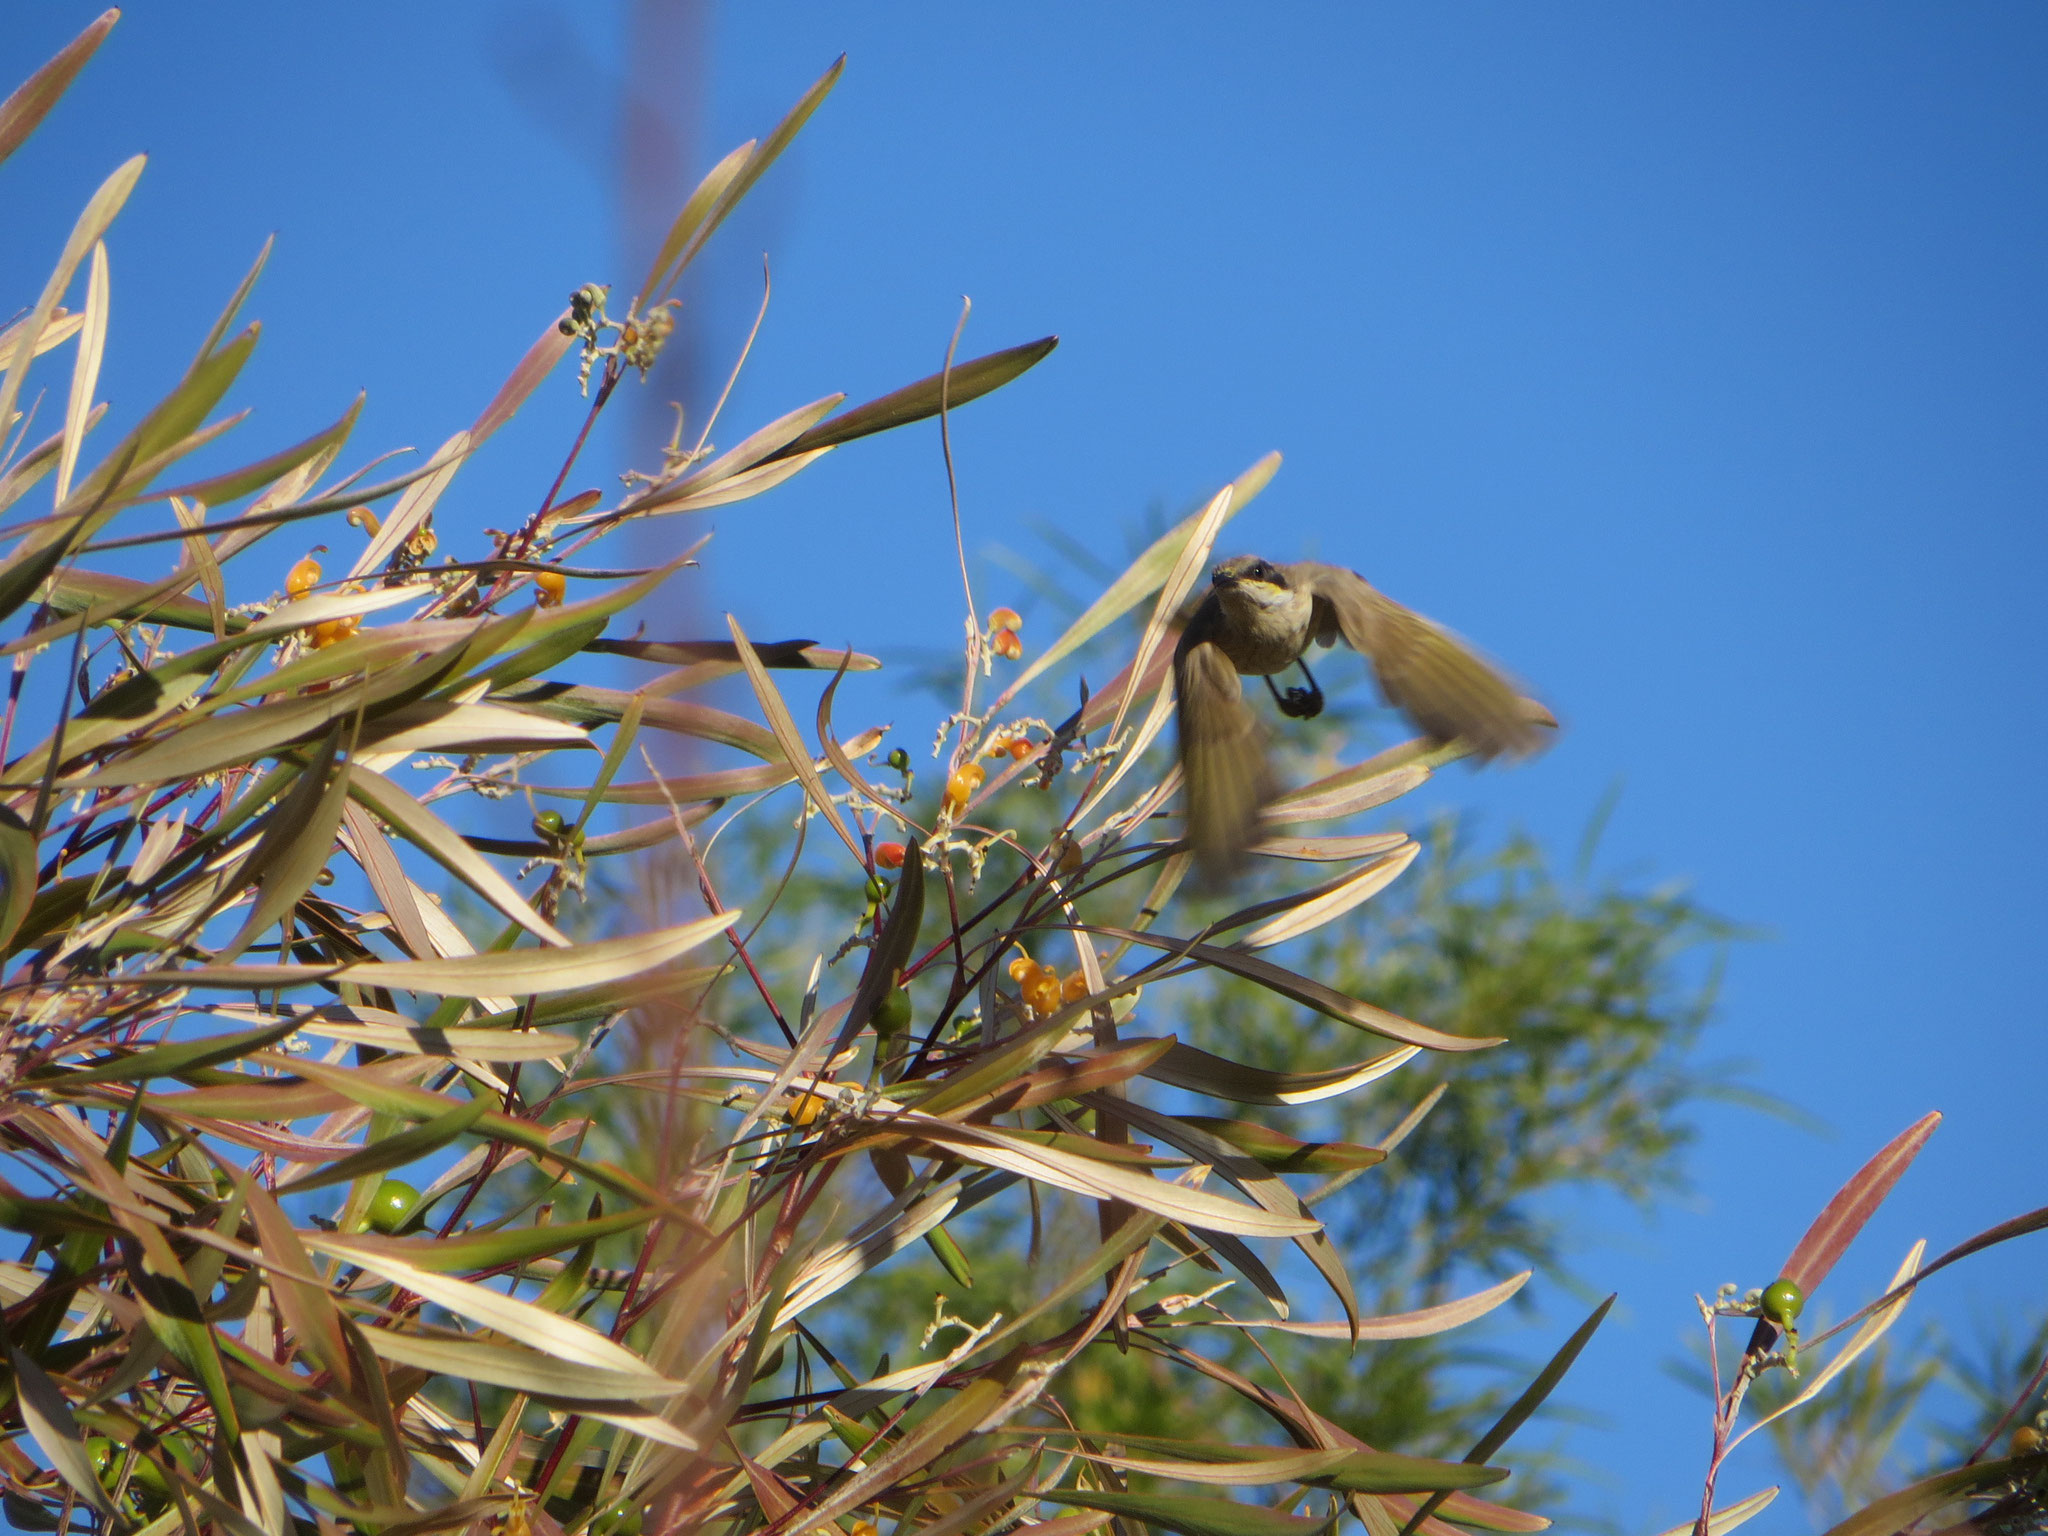 White-gaped honey eater in flight